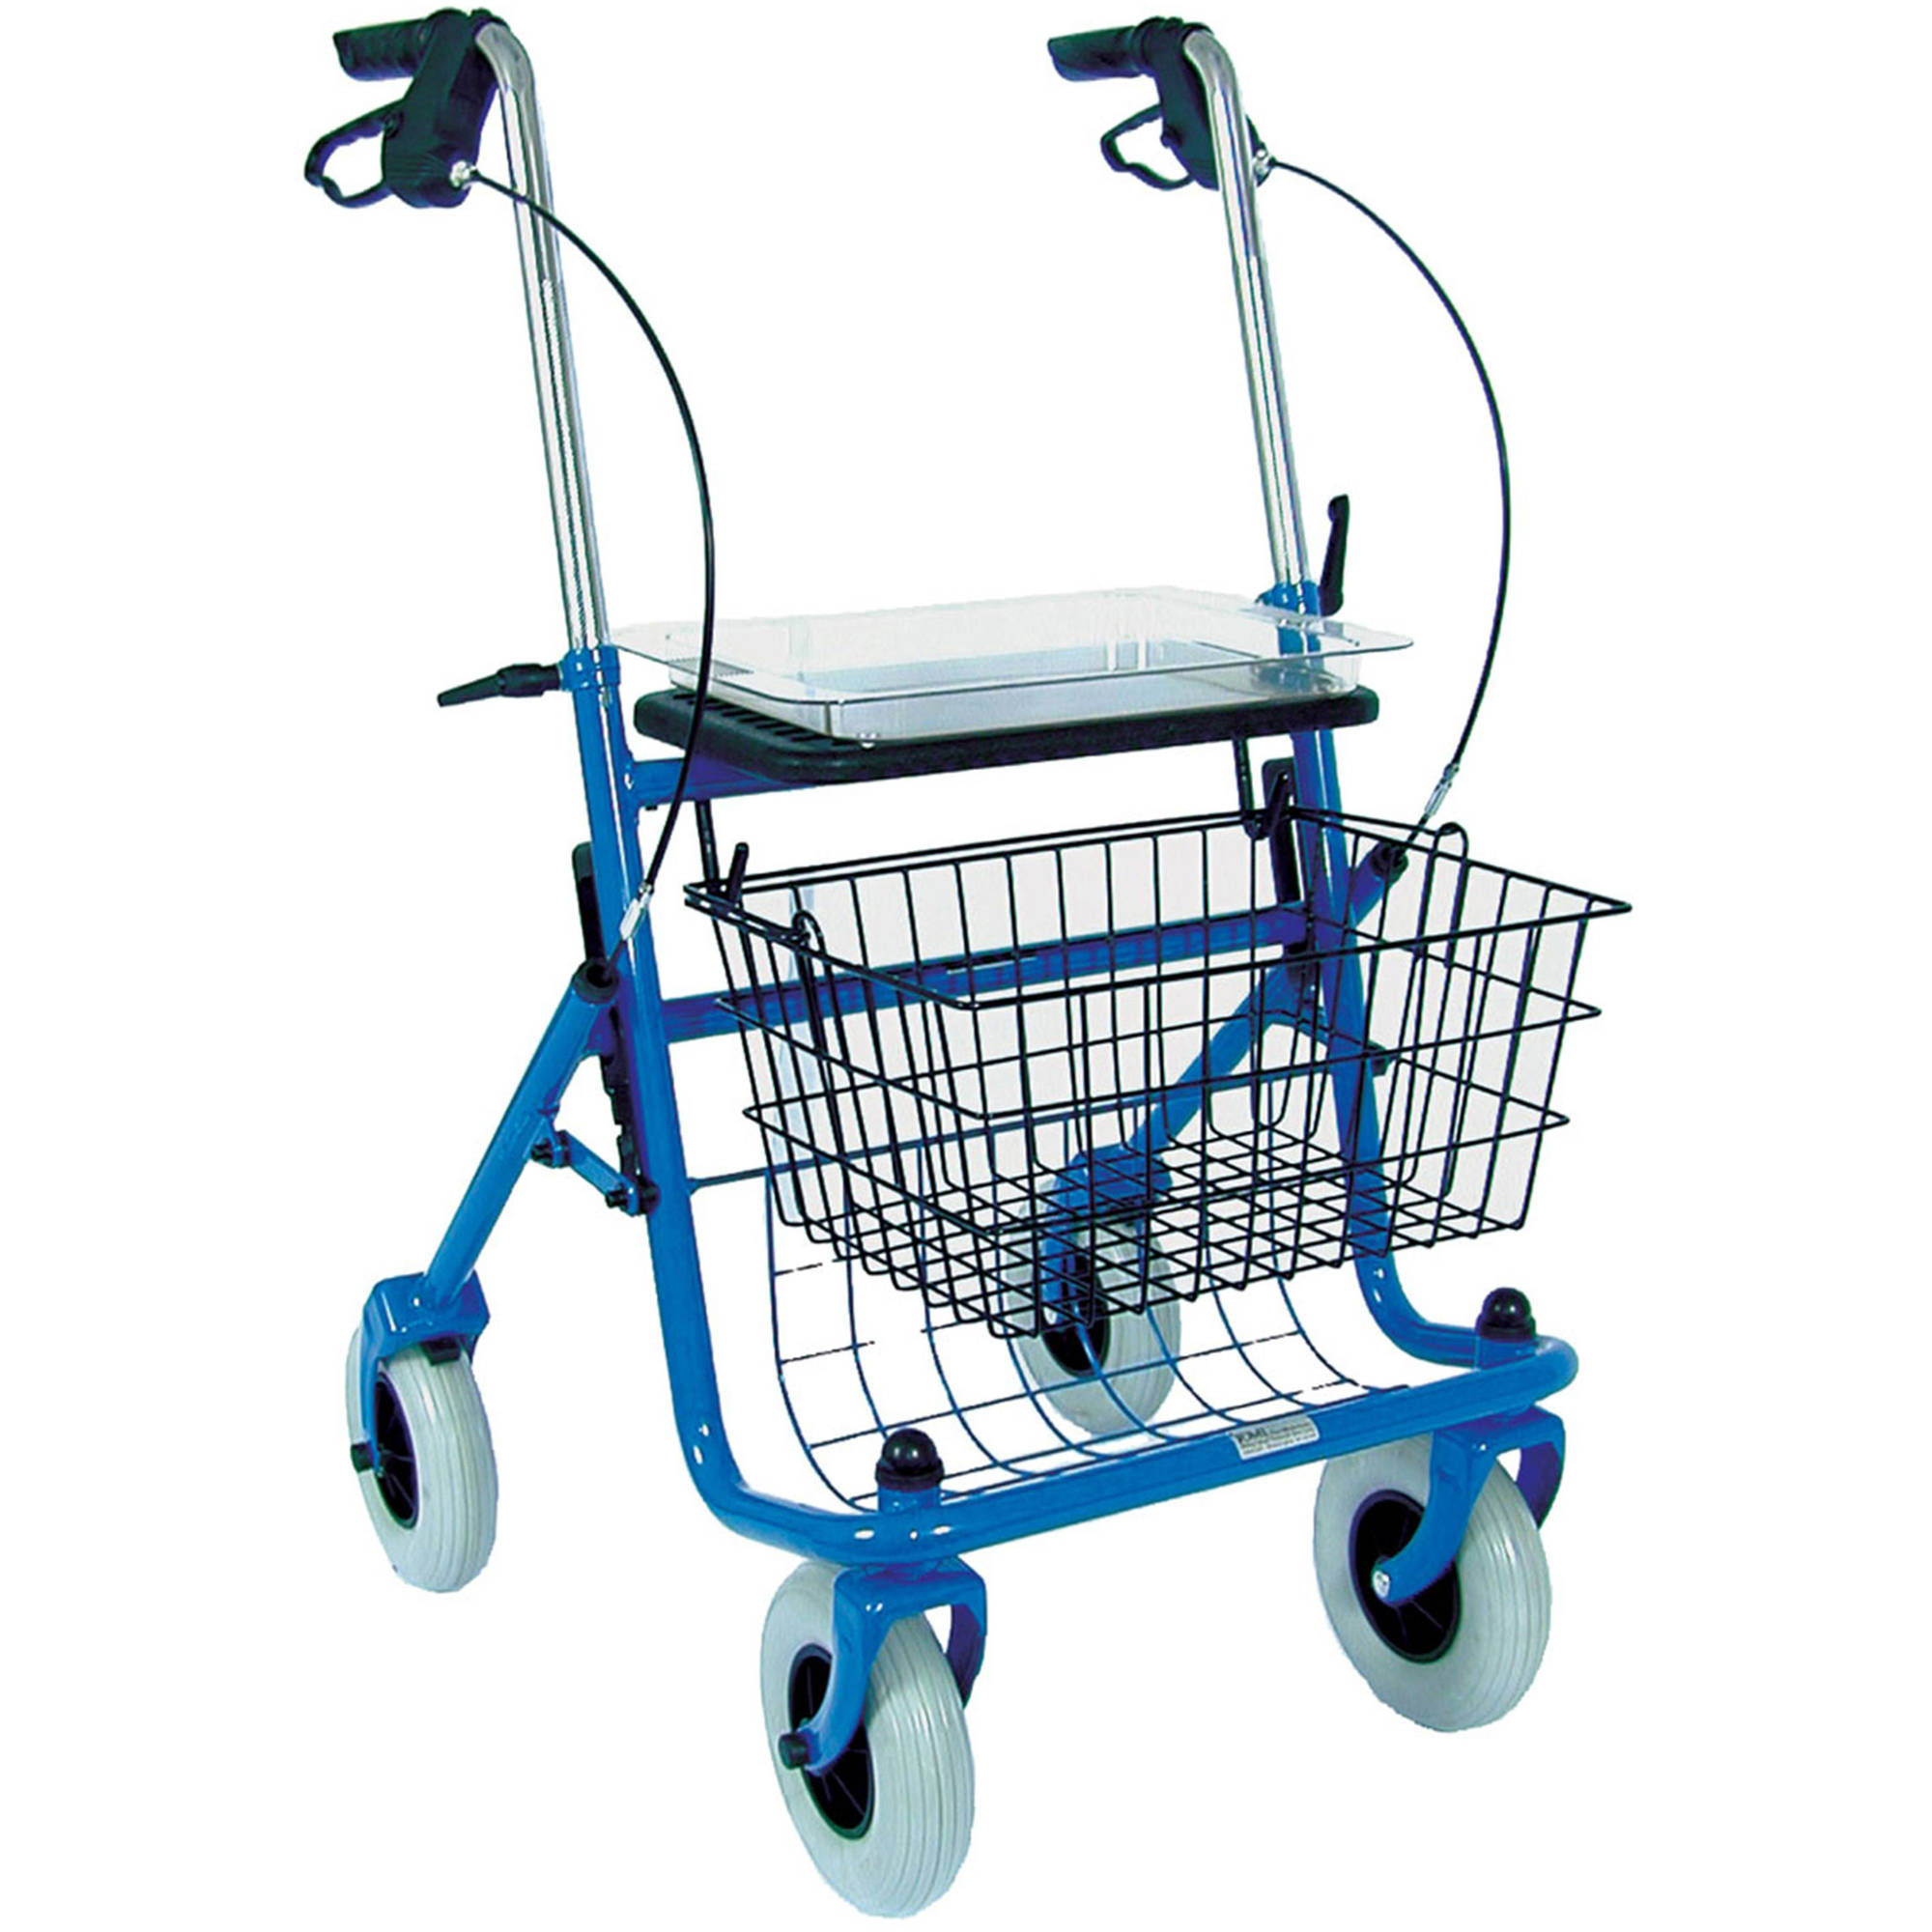 DMI Walkers for Seniors with Padded Seat, Removable Basket and Storage Tray, Classic Steel Rollator Walker Brakes, 4 Wheel Medical Walker for Elderly, Folding Walker for Adults, Blue